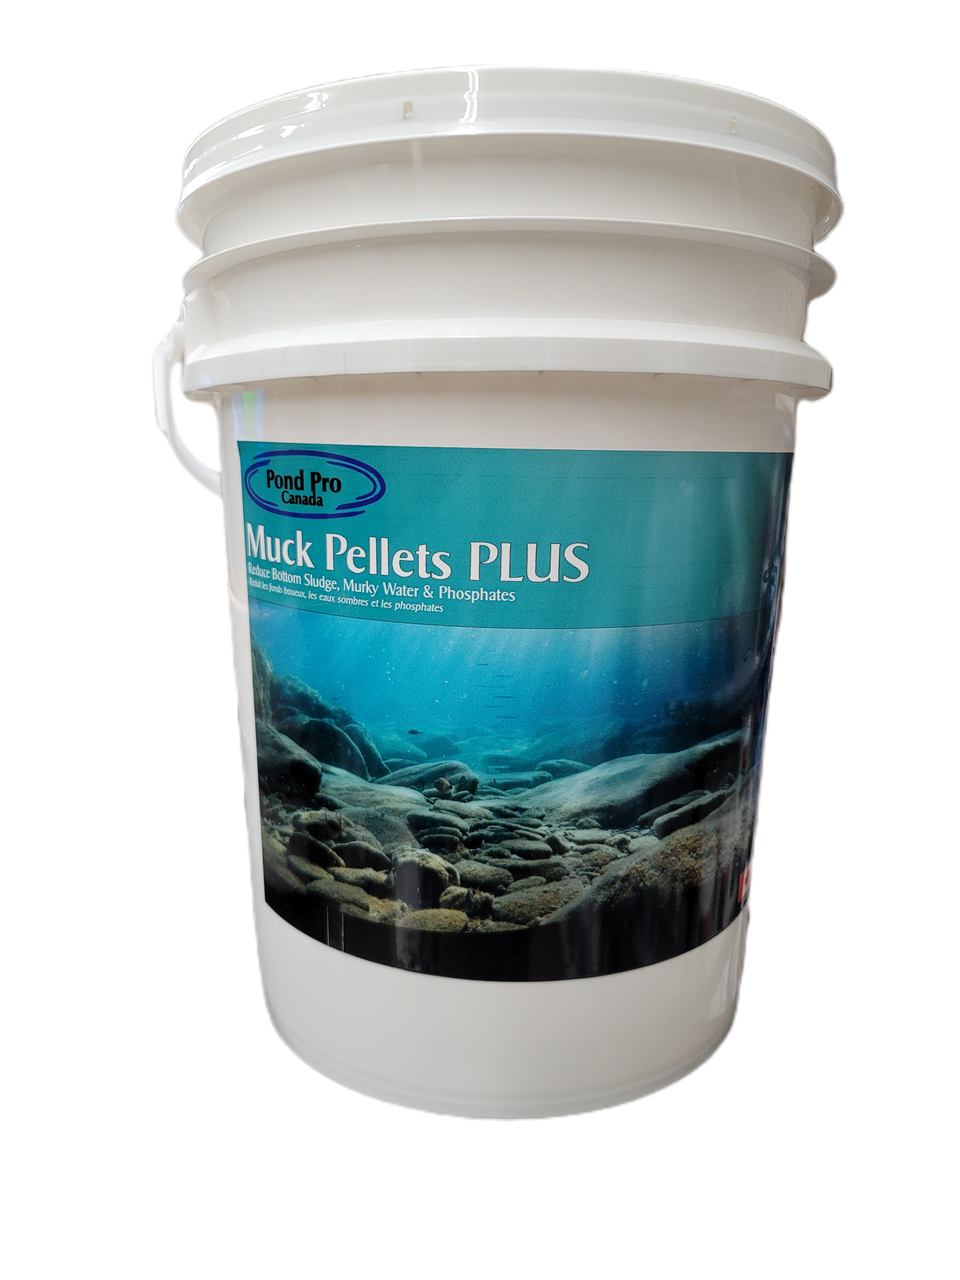 Muck Pellets PLUS